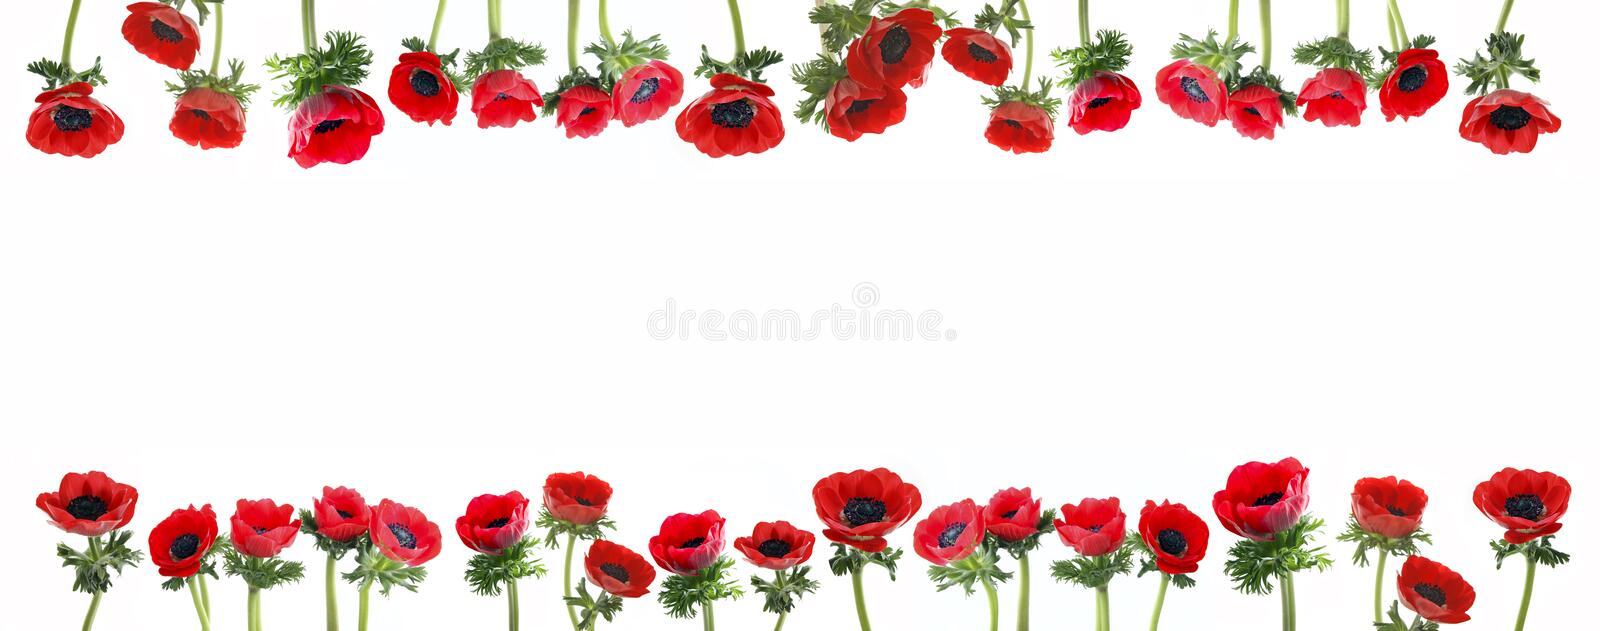 Download Flowers Border Stock Photos - Image: 19642193